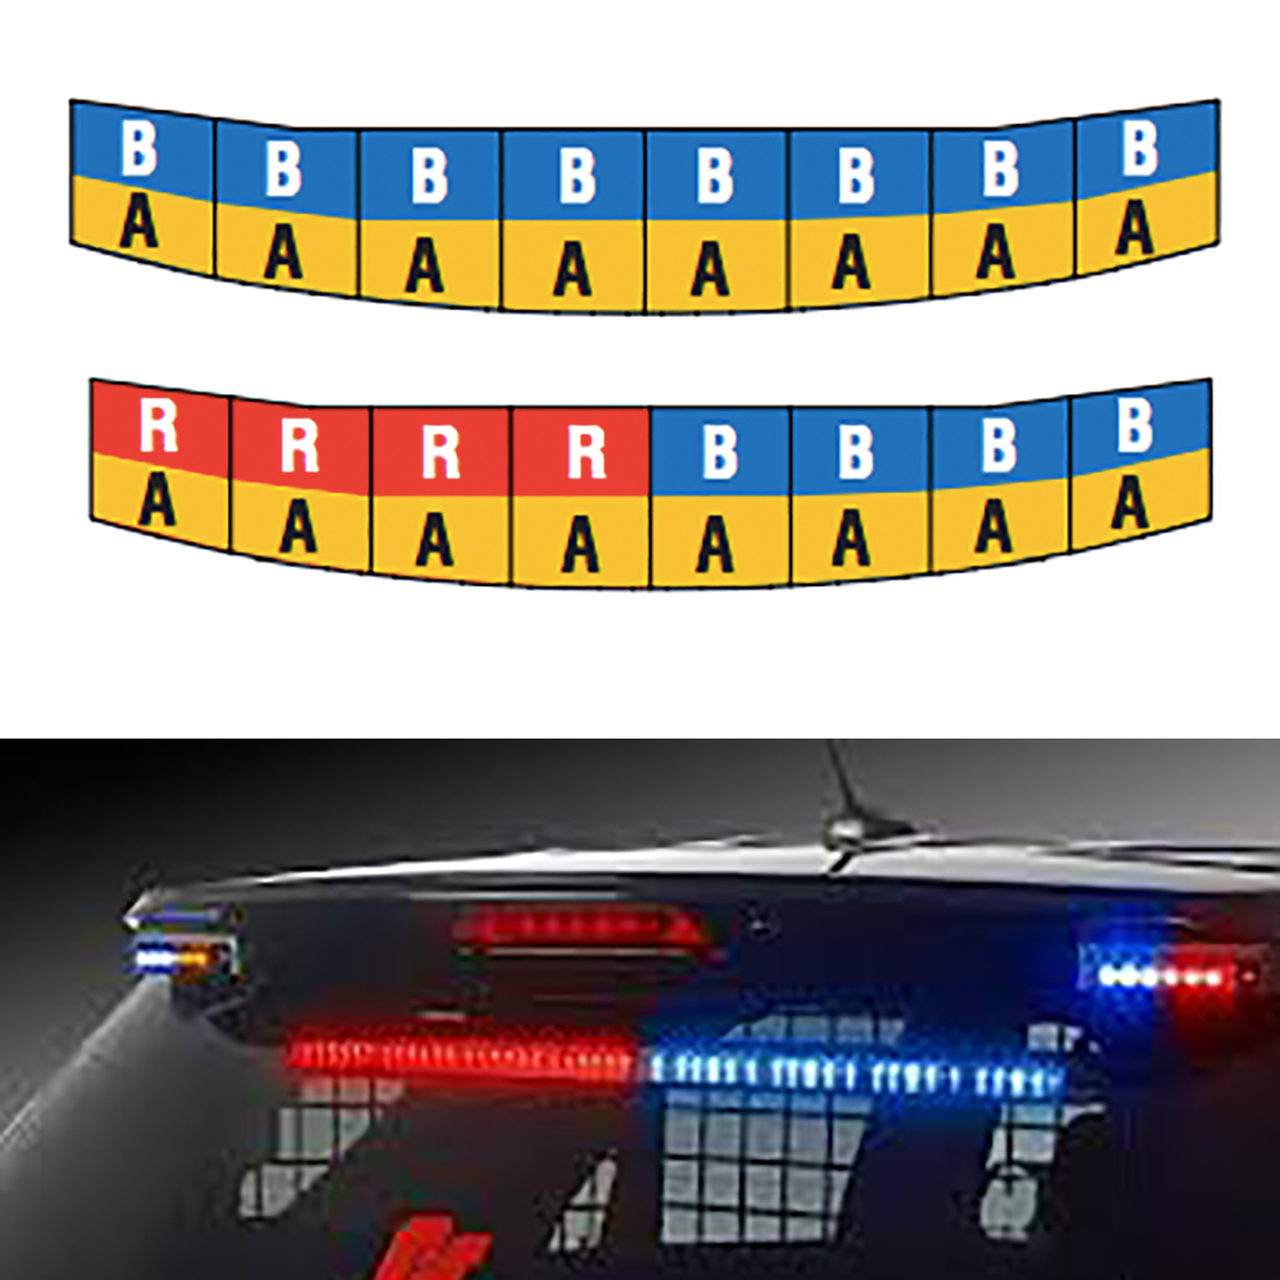 Federal Signal Chevy Tahoe SIFMH Upper Rear Facing Interior Lightbar, Spectralux ILS, Dual Color per head, available in Red, Blue, and Red/Blue with Amber Traffic Advisor